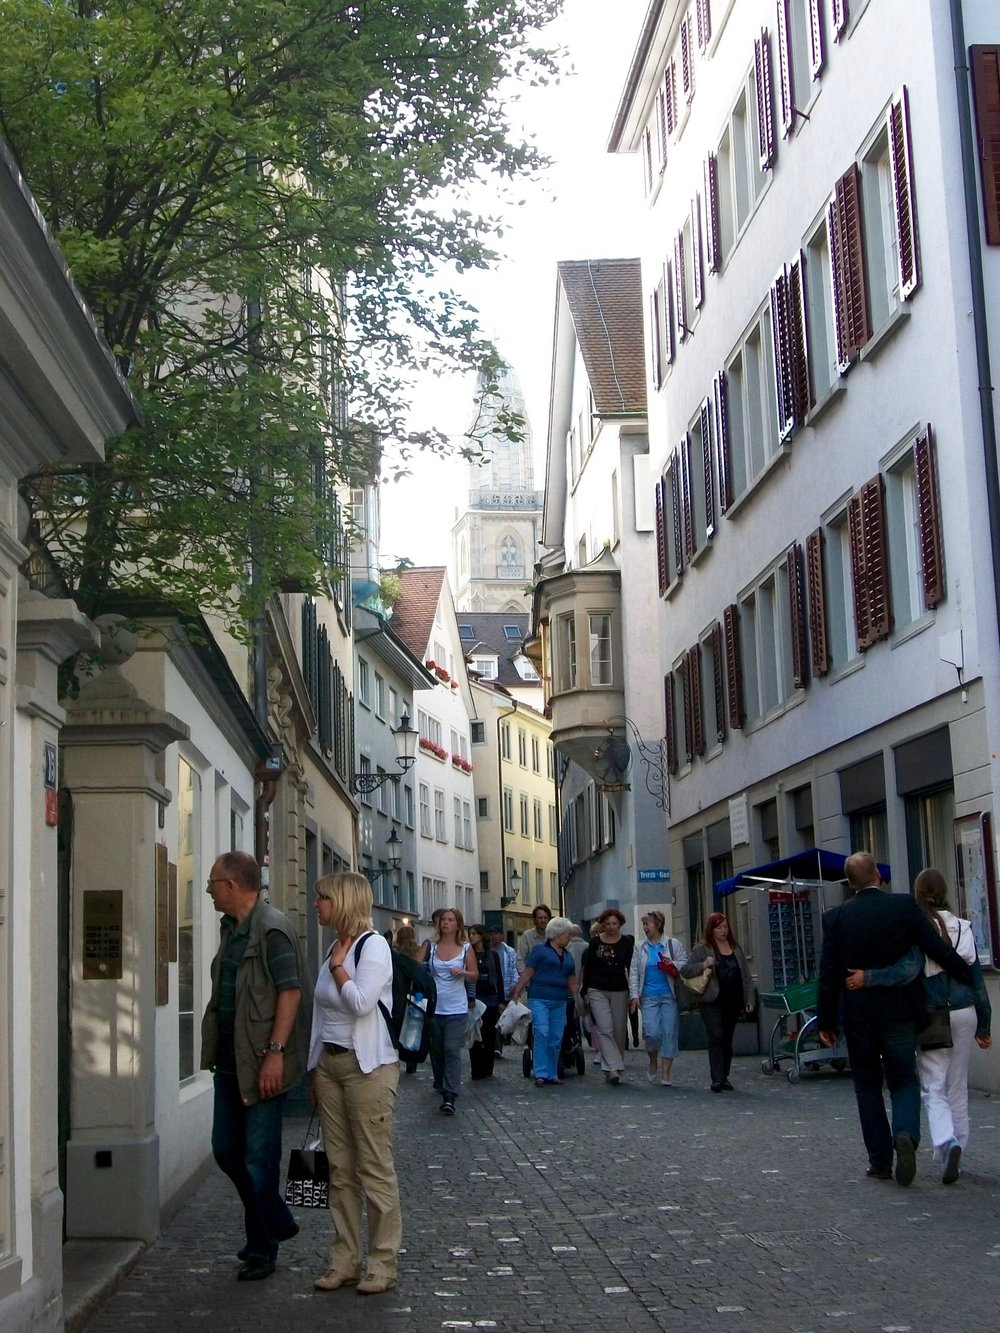 Wandering the streets of Zurich, Switzerland